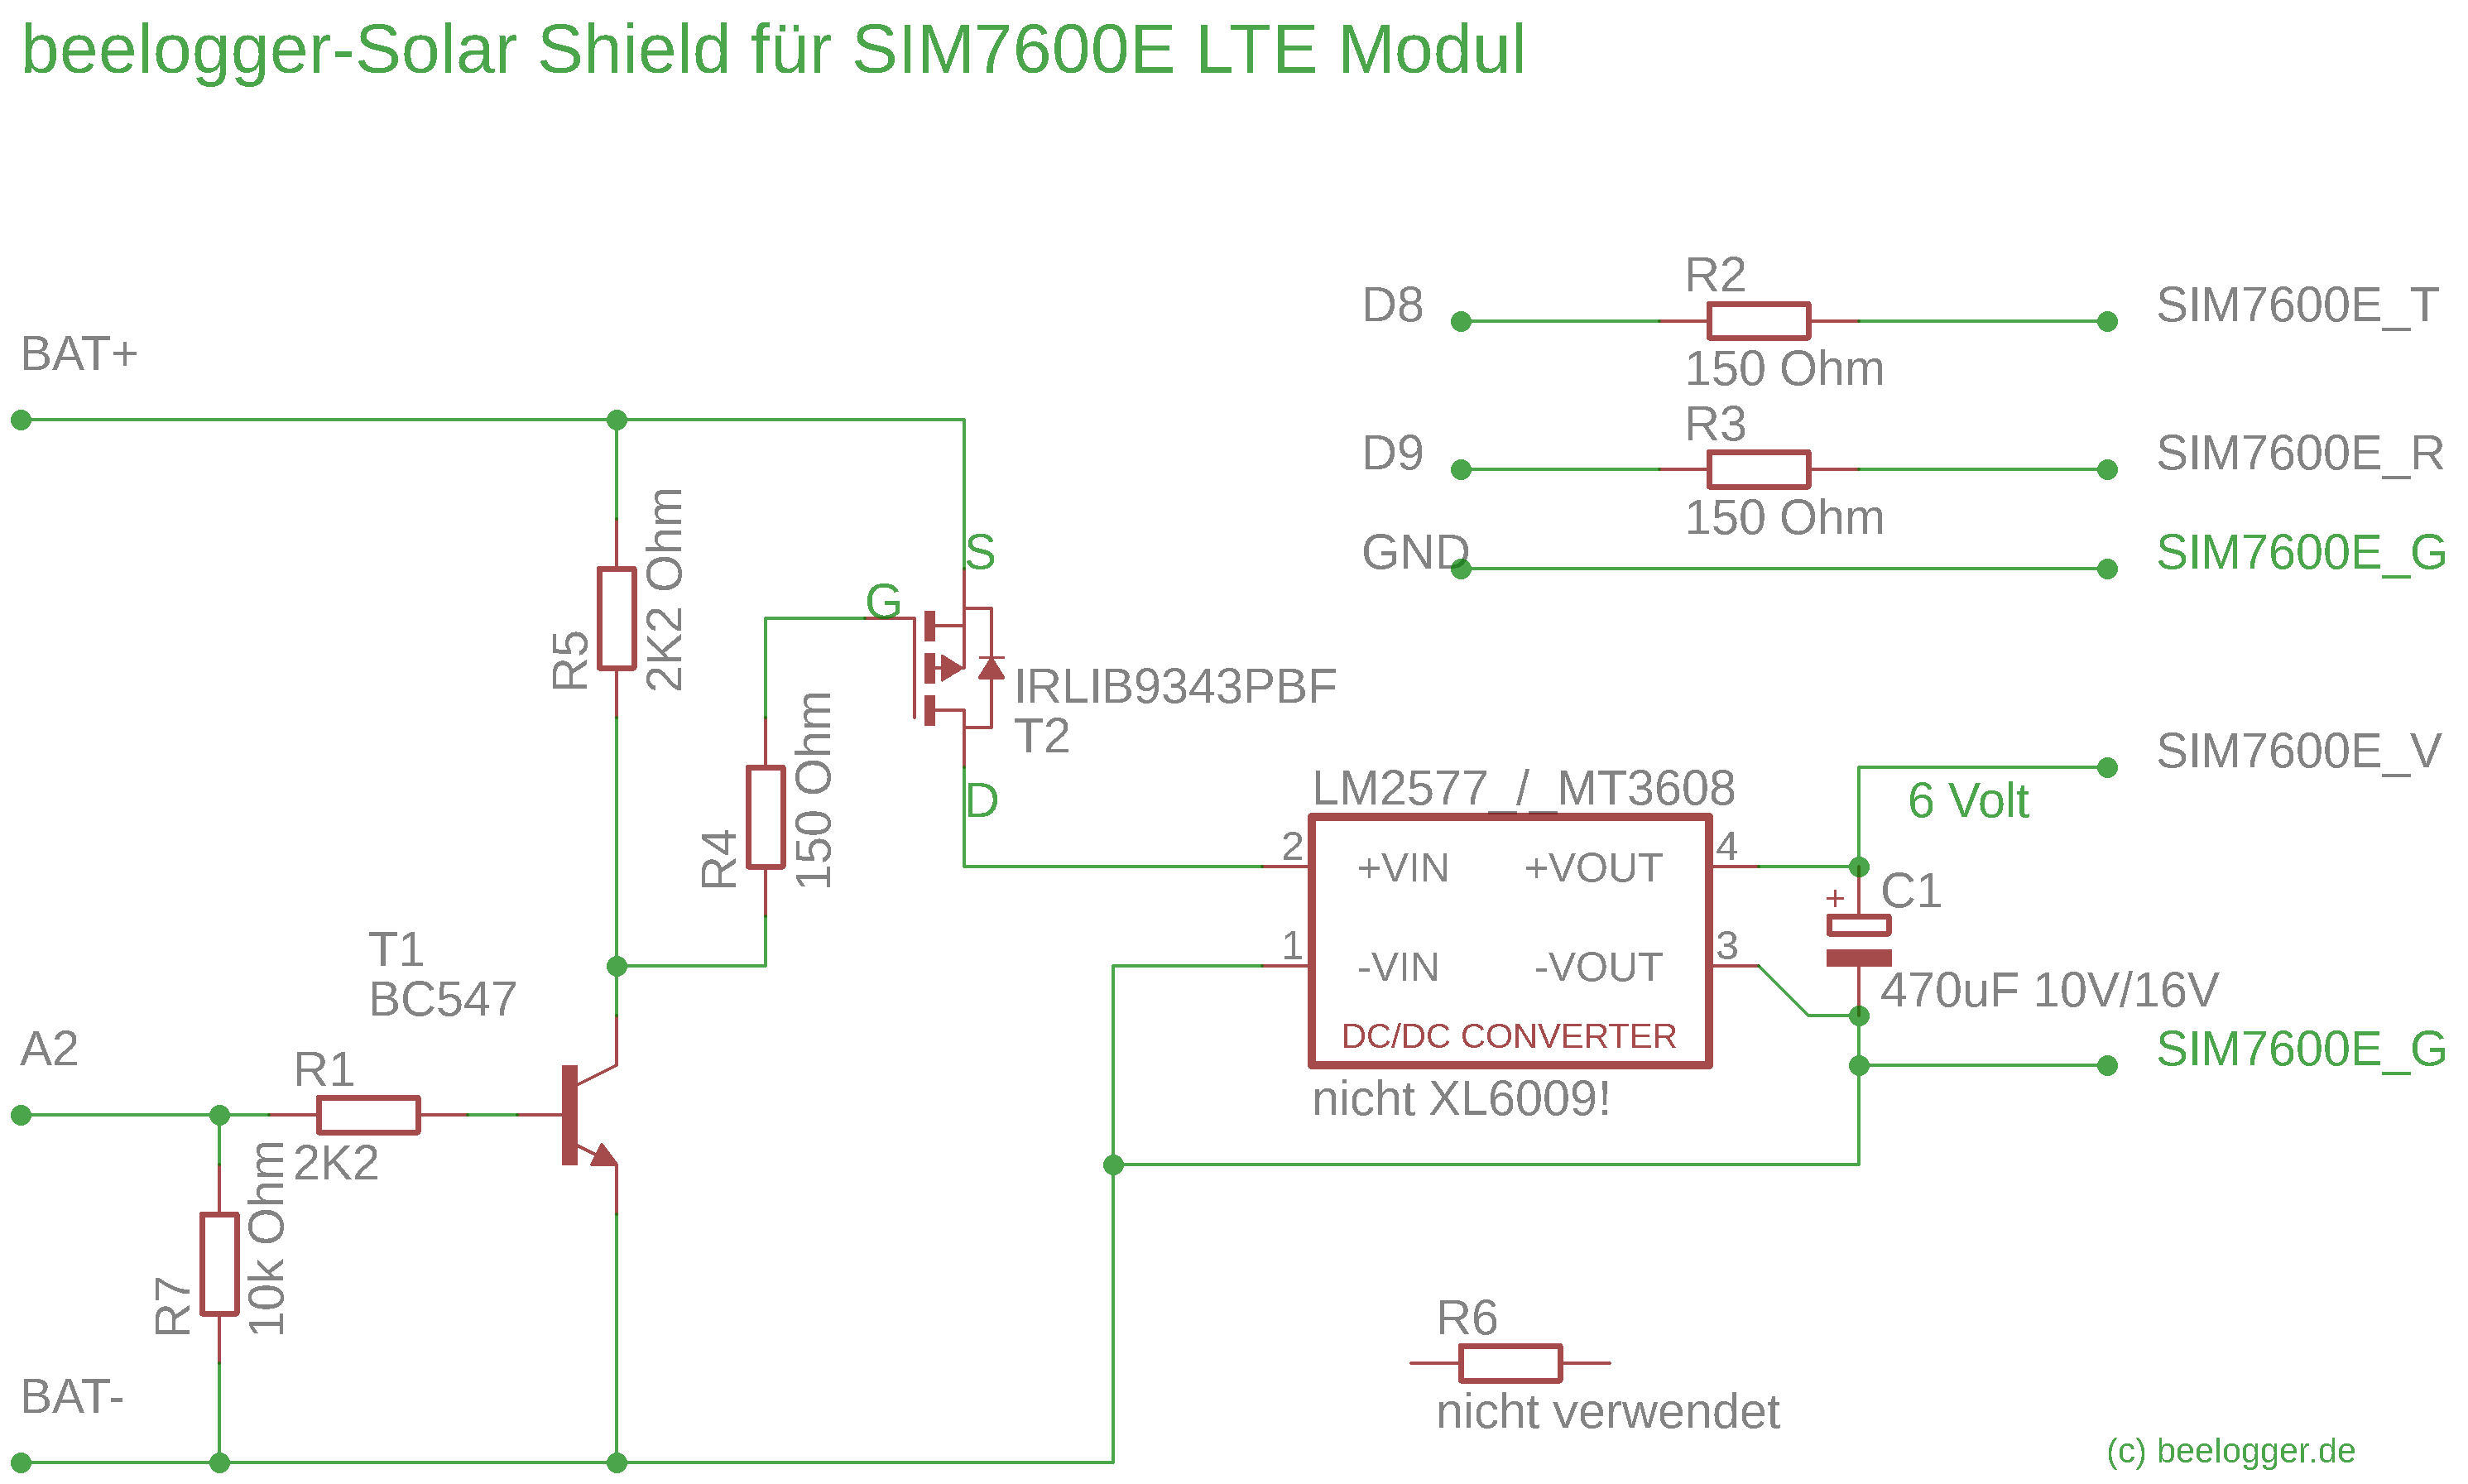 Schaltbild LTE-Shield komplett mit Step-up-Regler